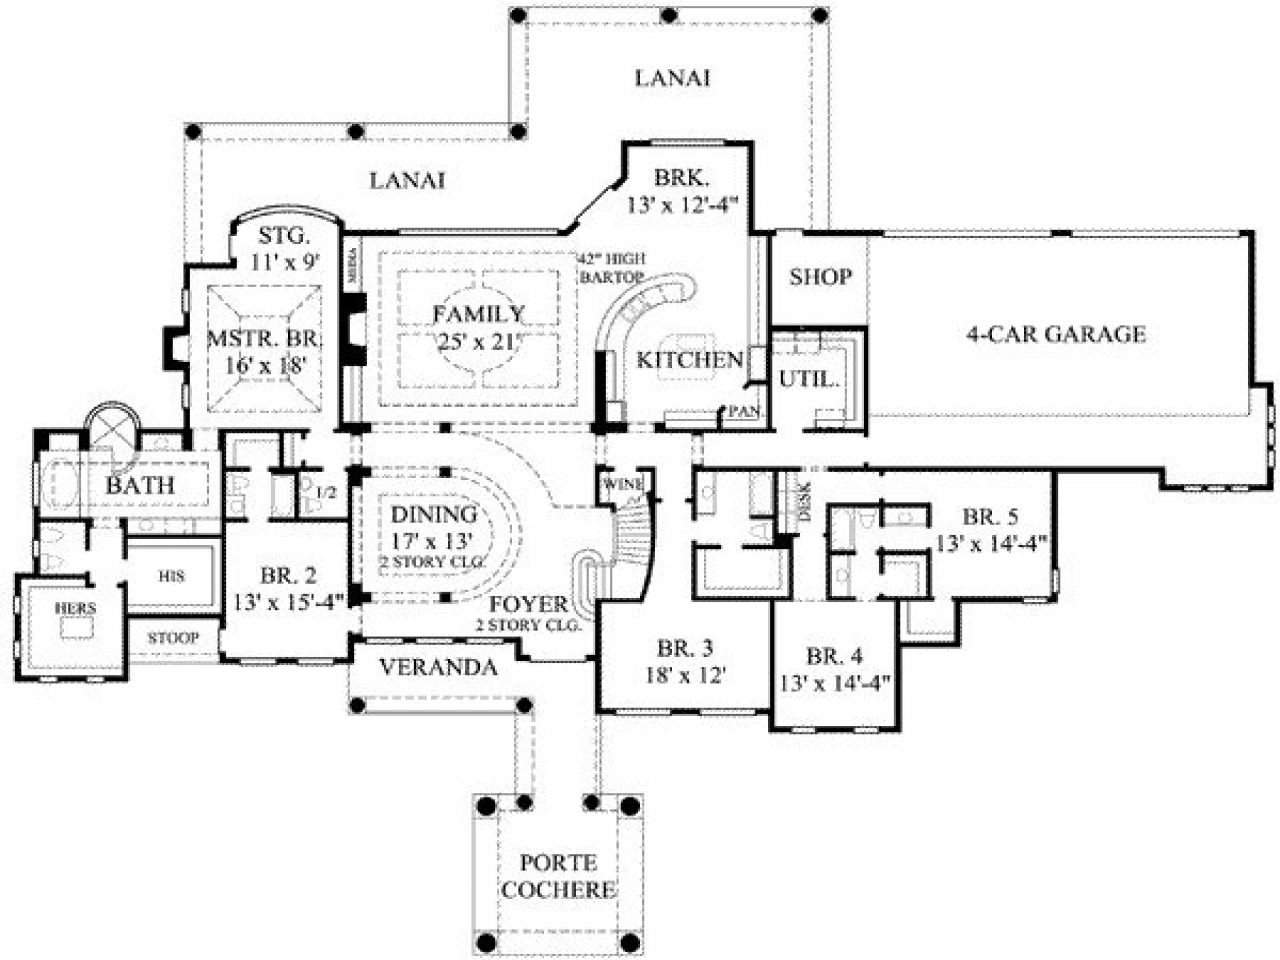 Simple 5 Bedroom House Plans 7 Bedroom House Plans, 7 ...